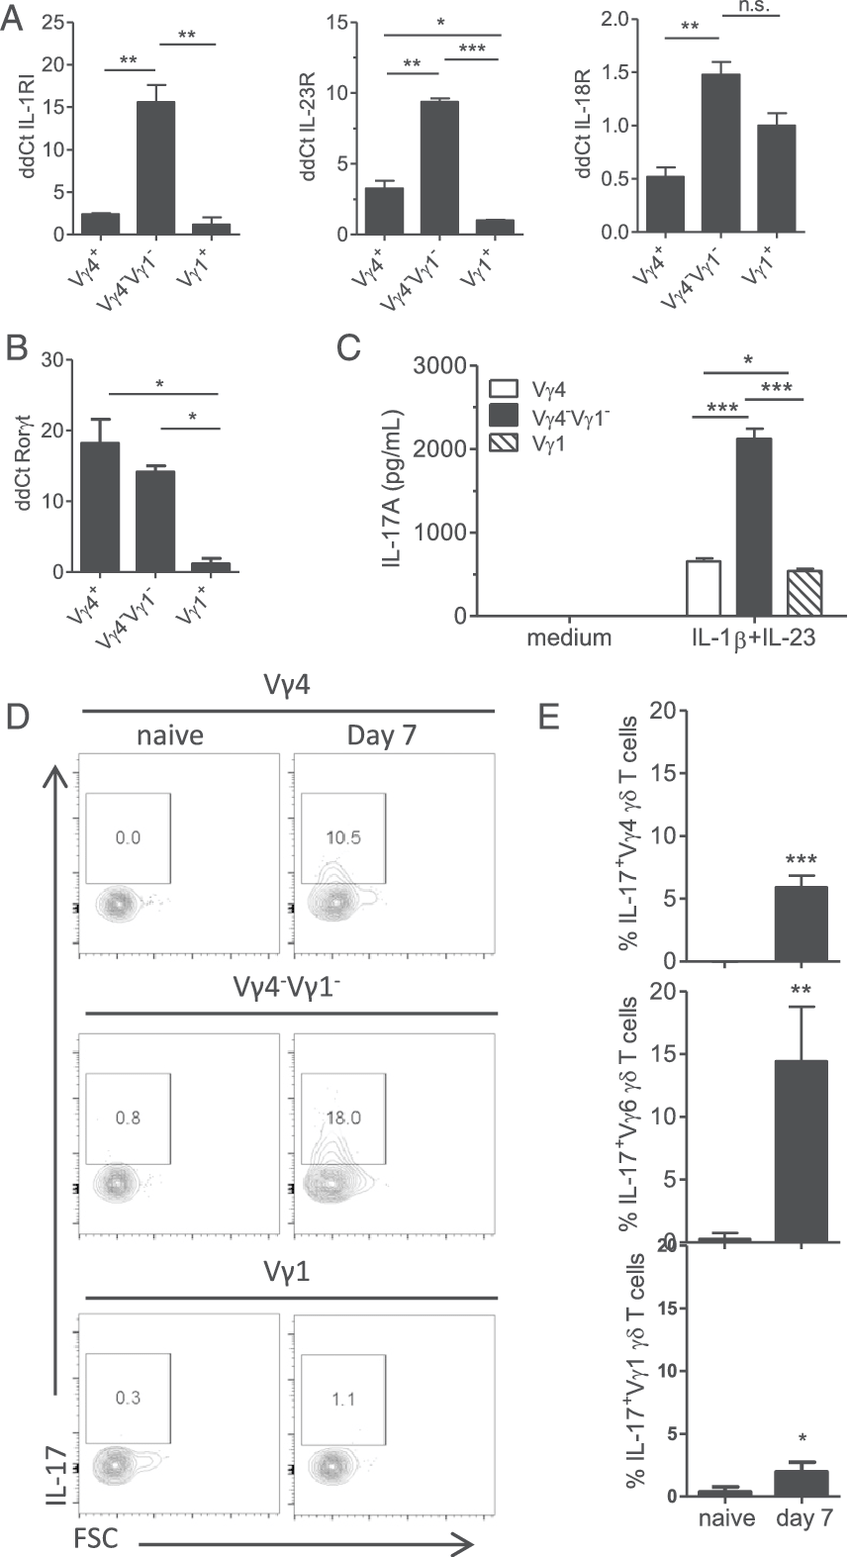 hight resolution of vg4 2 vg1 2 and vg4 gd t cells contribute to innate il 17 production during b pertussis infection vg1 vg4 and vg4 2 vg1 2 gd t cells 1 3 10 5